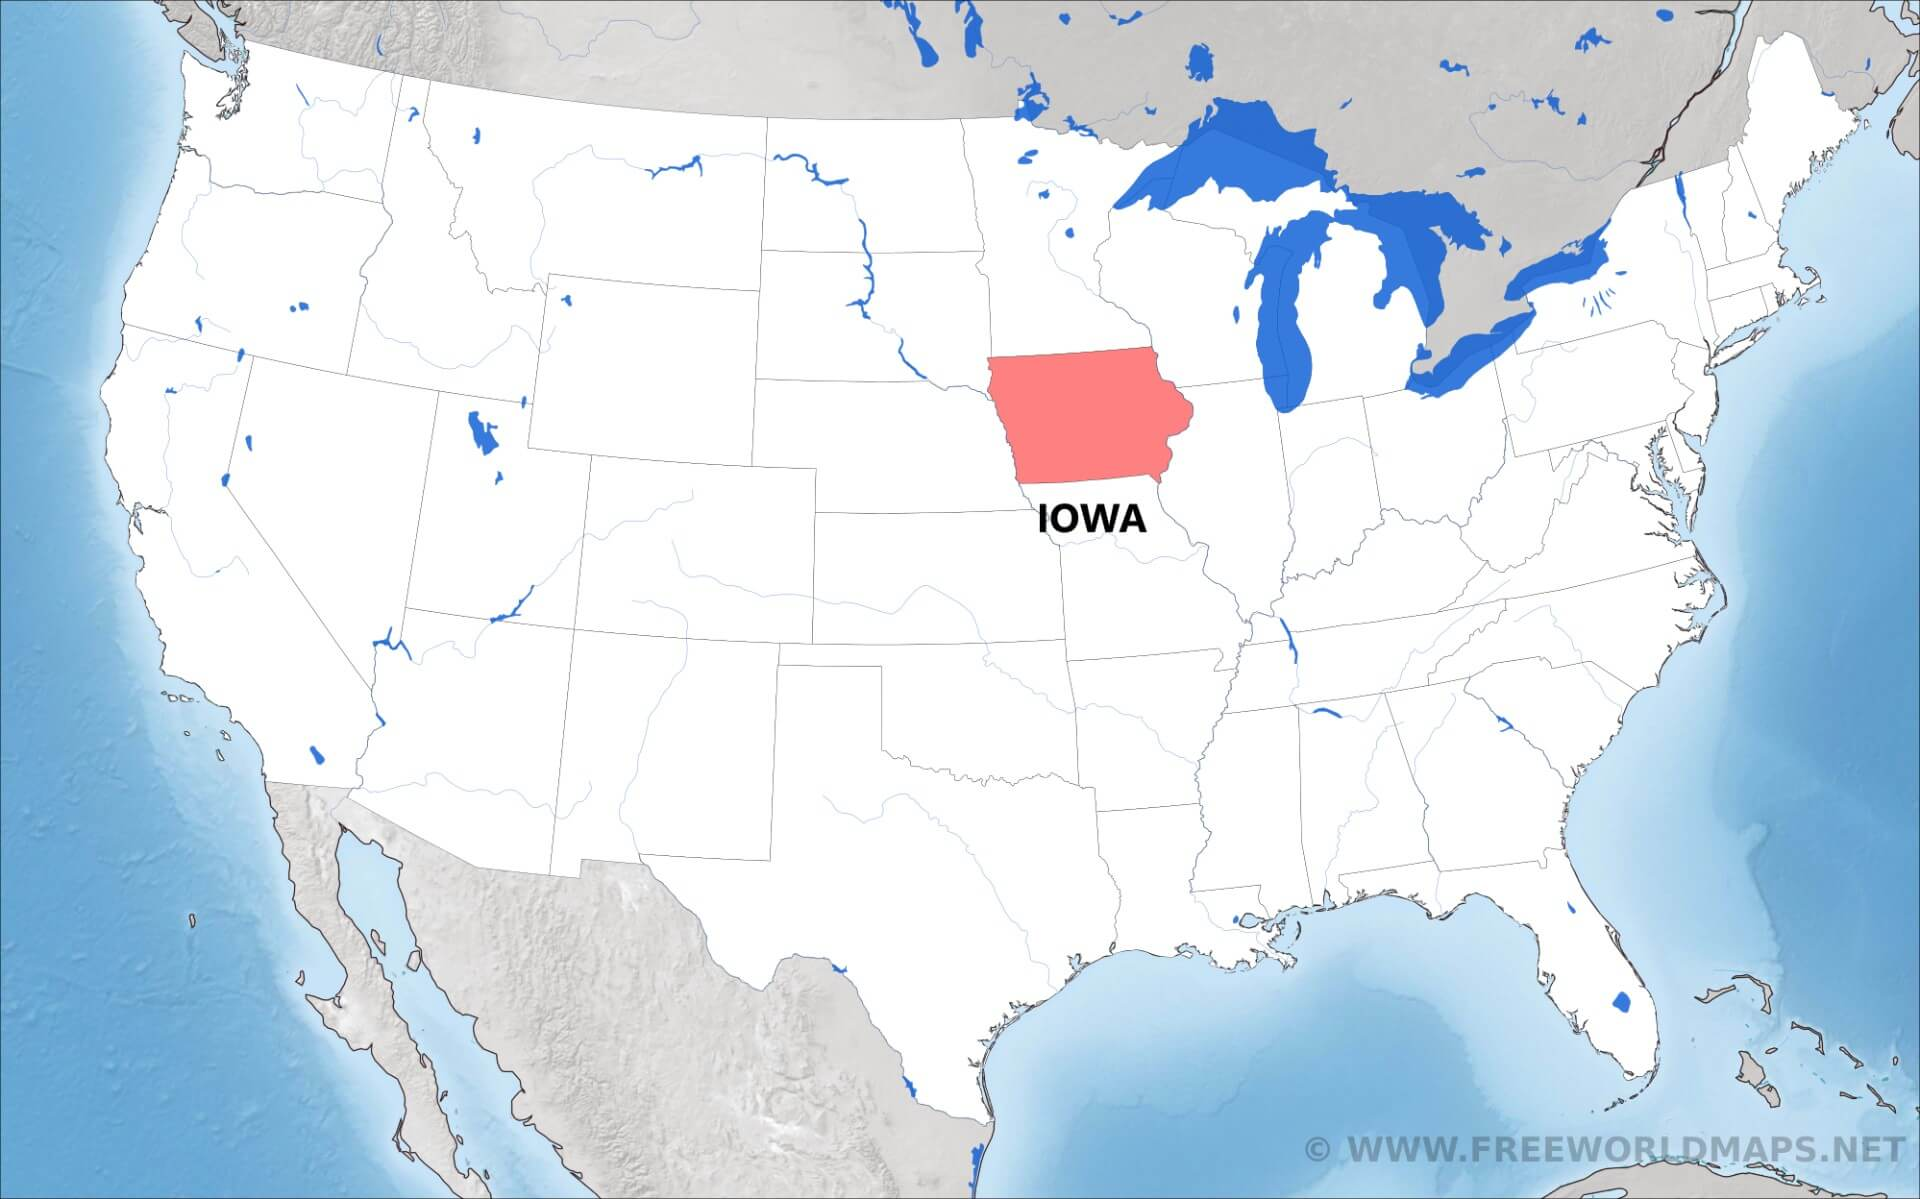 Where Is Iowa Located On The Map - Iowa on a us map